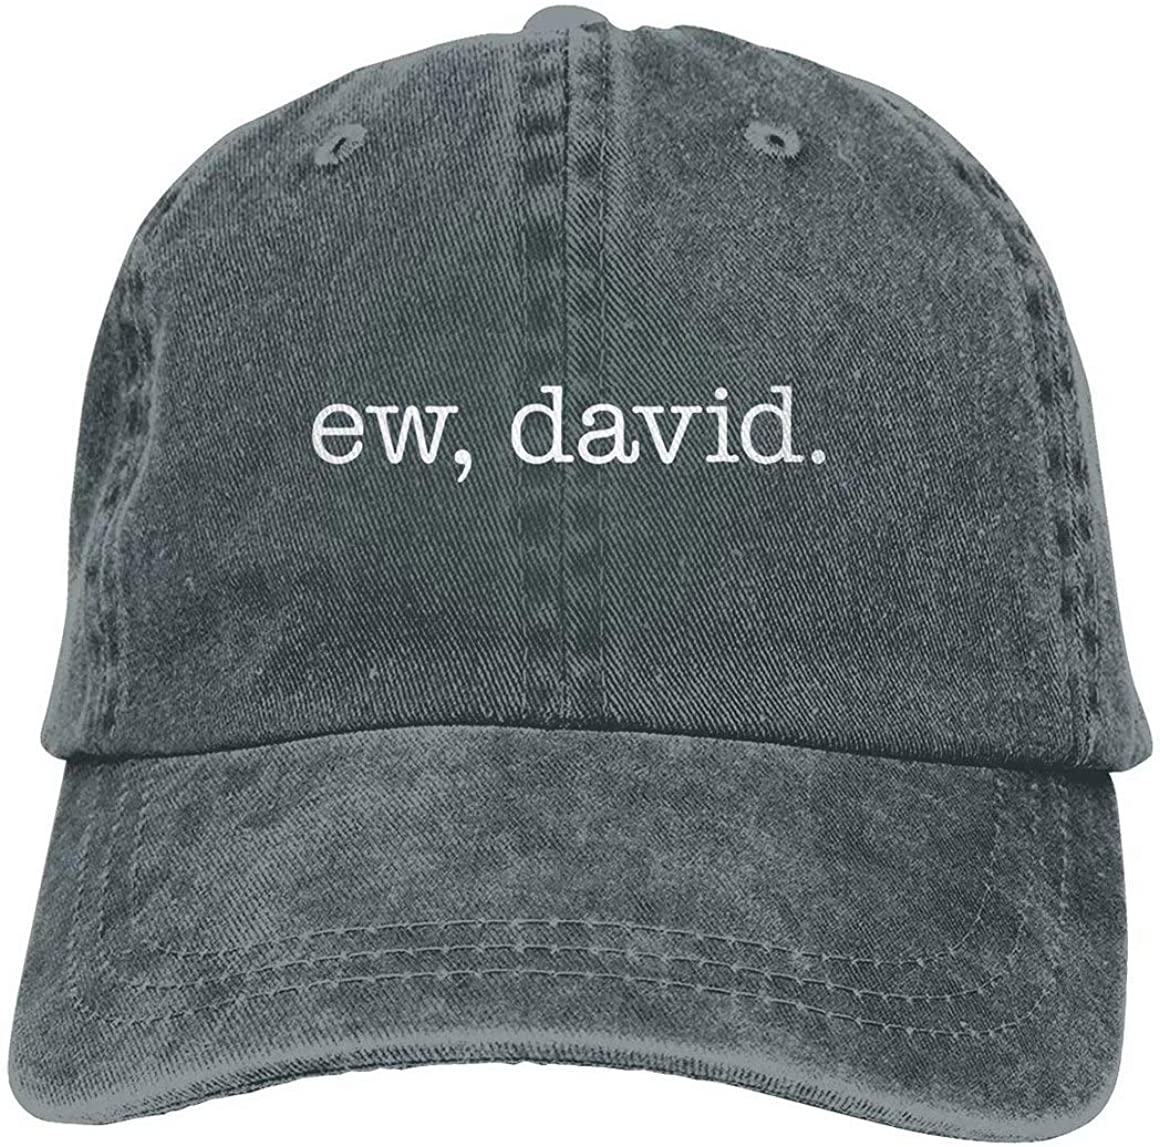 Nagetive Ew David Unisex Adjustable Hat Travel Sunscreen Caps